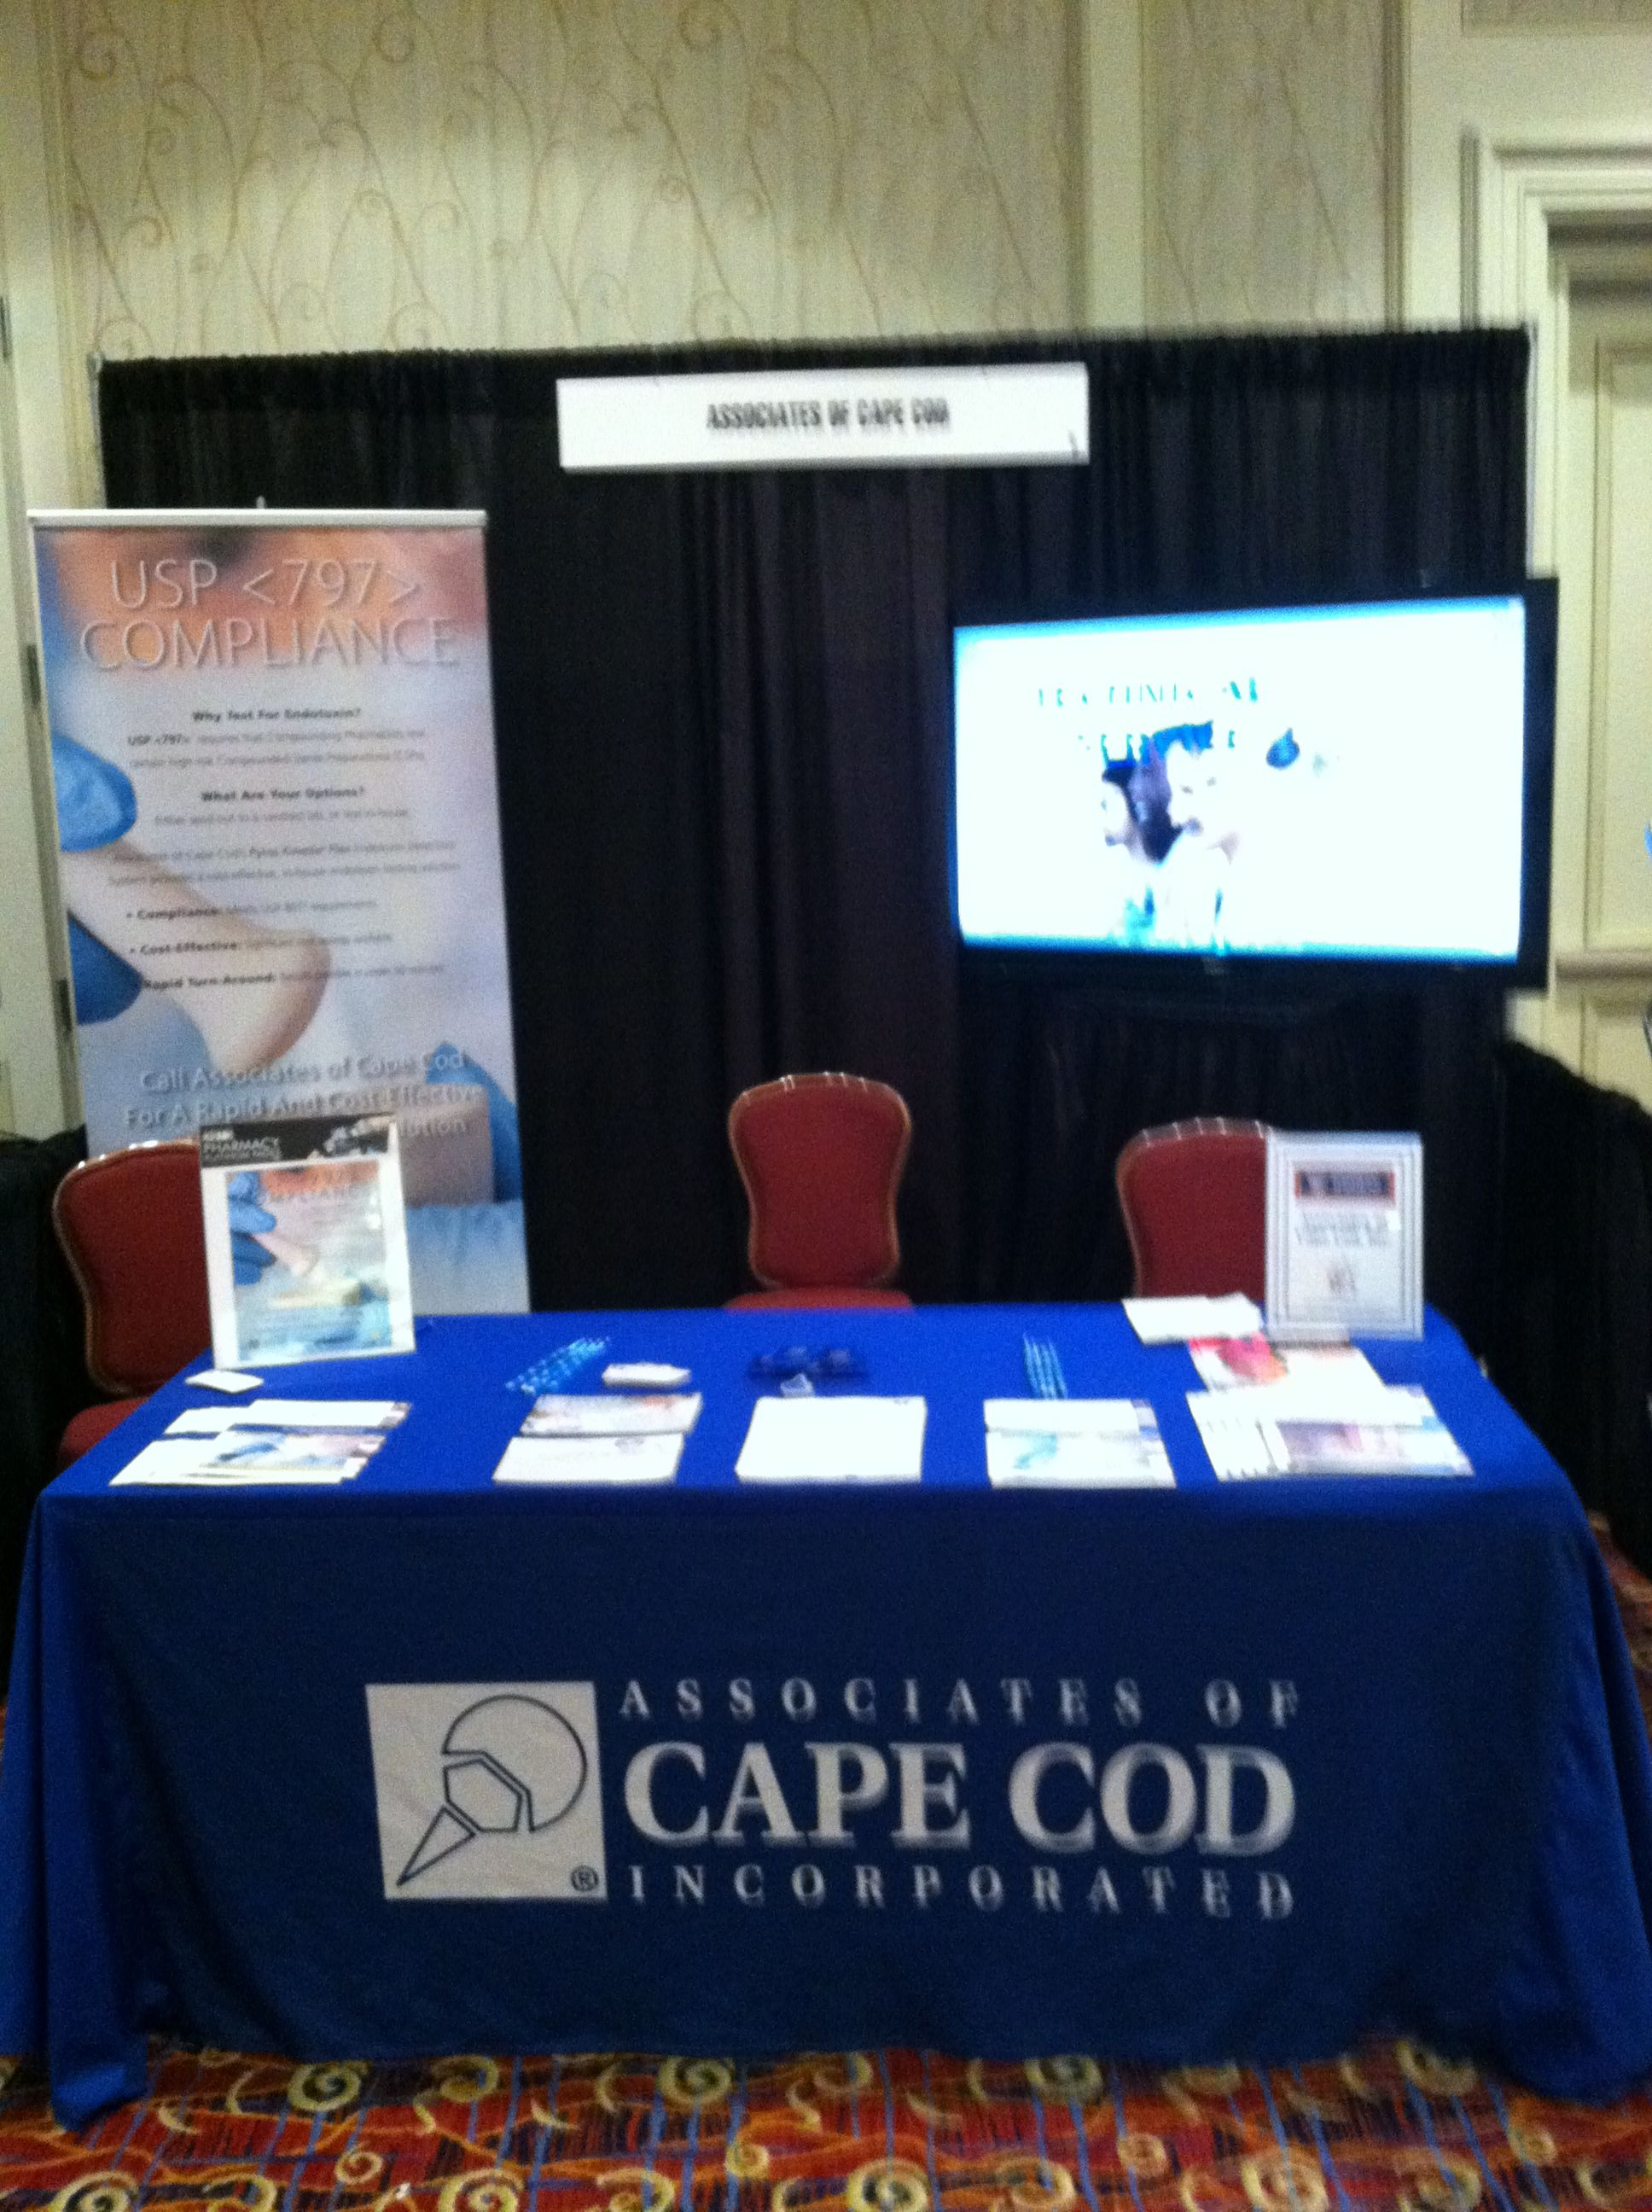 Associates of cape cod iacps 19th annual compounders on